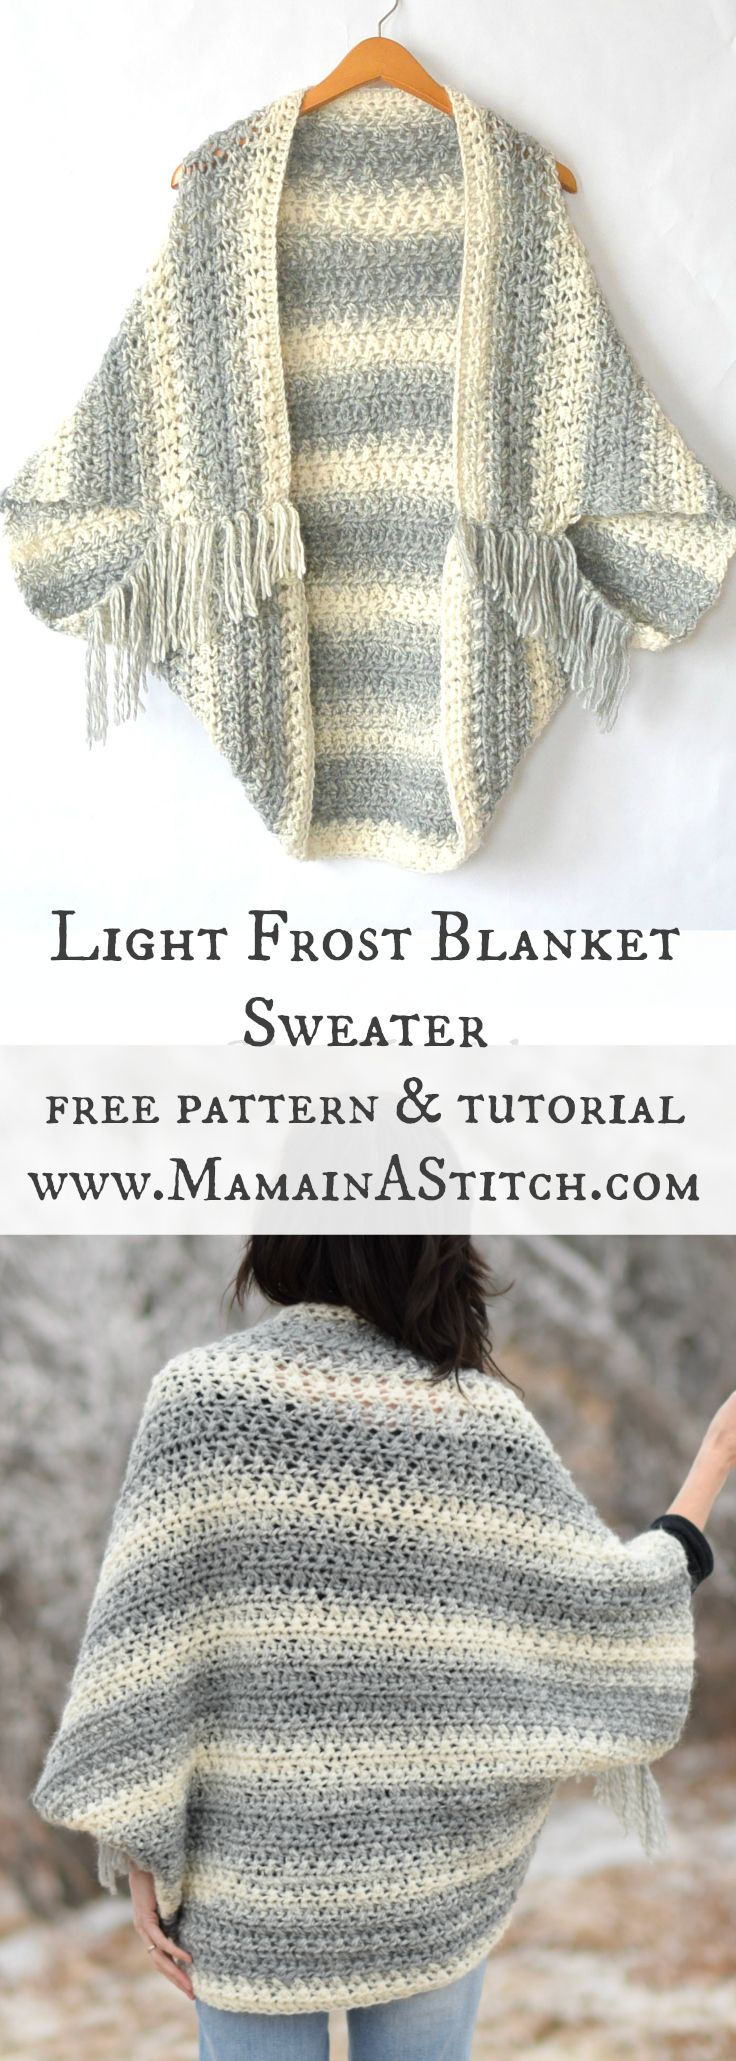 Light Frost Easy Blanket Sweater Crochet Pattern | Knit And Crochet ...